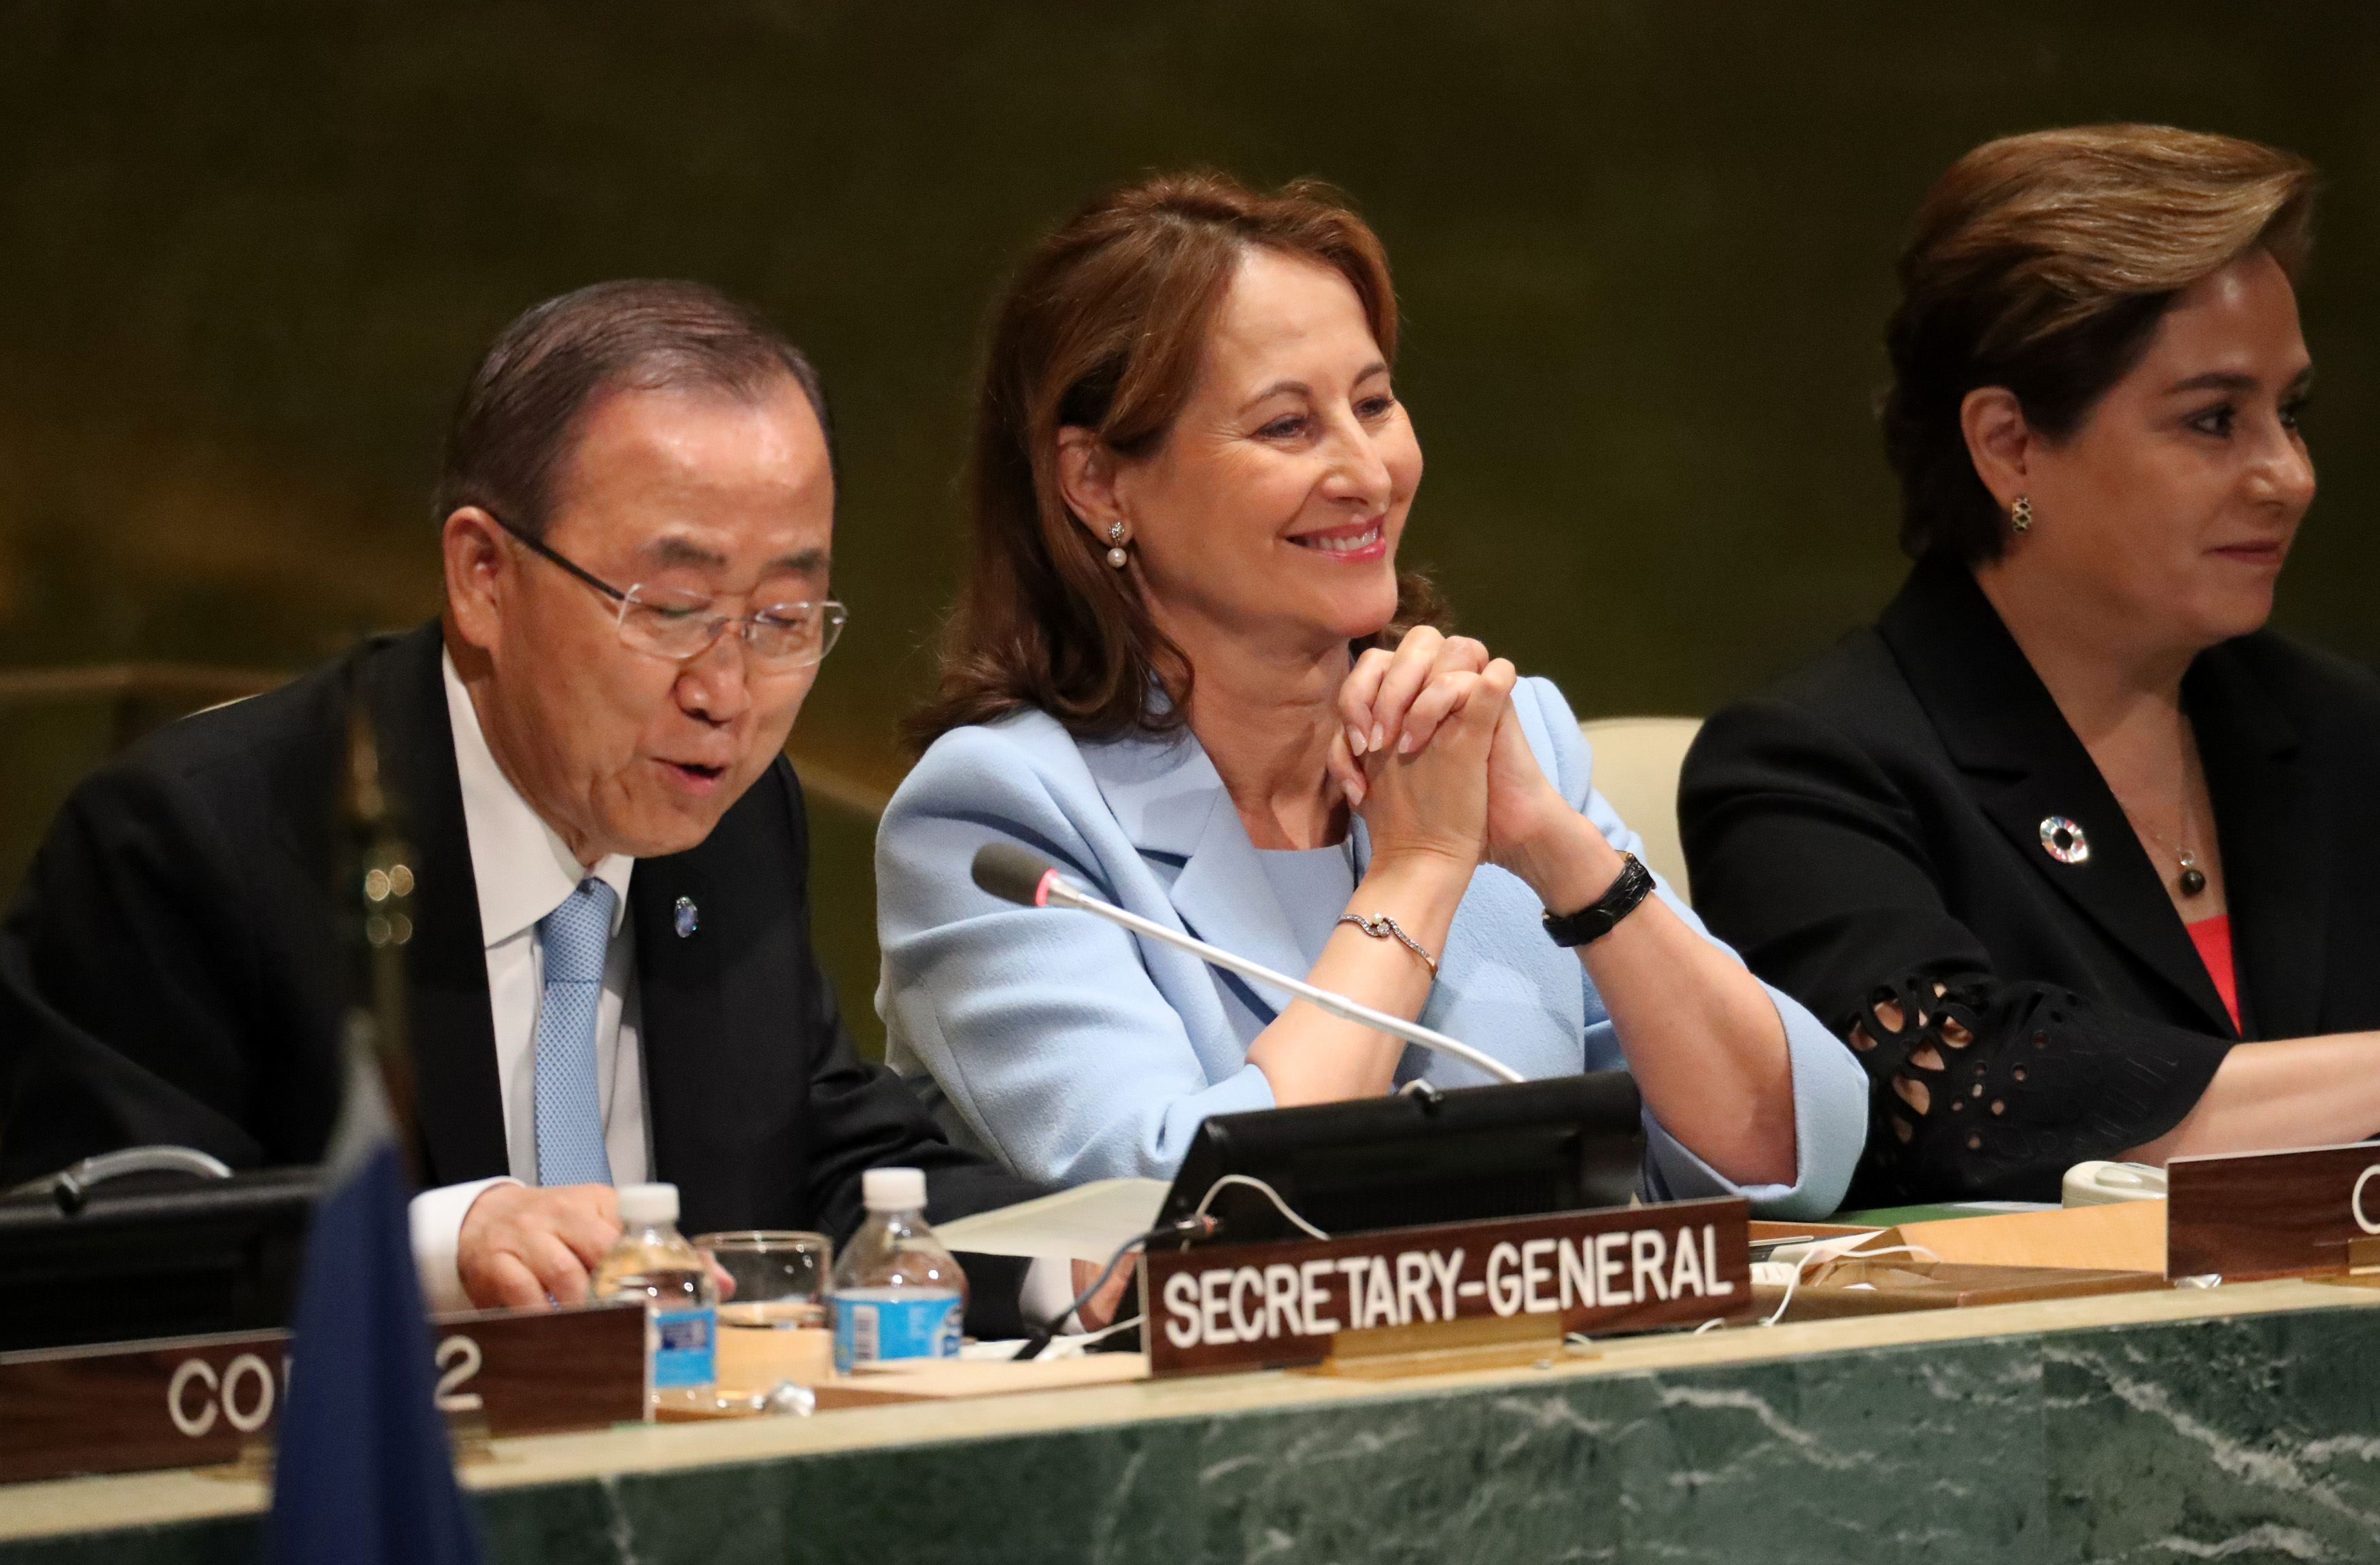 French Minister for Environment Segolene Royal sits with U.N. Secretary General Ban Ki-moon at United Nations headquarters in New York